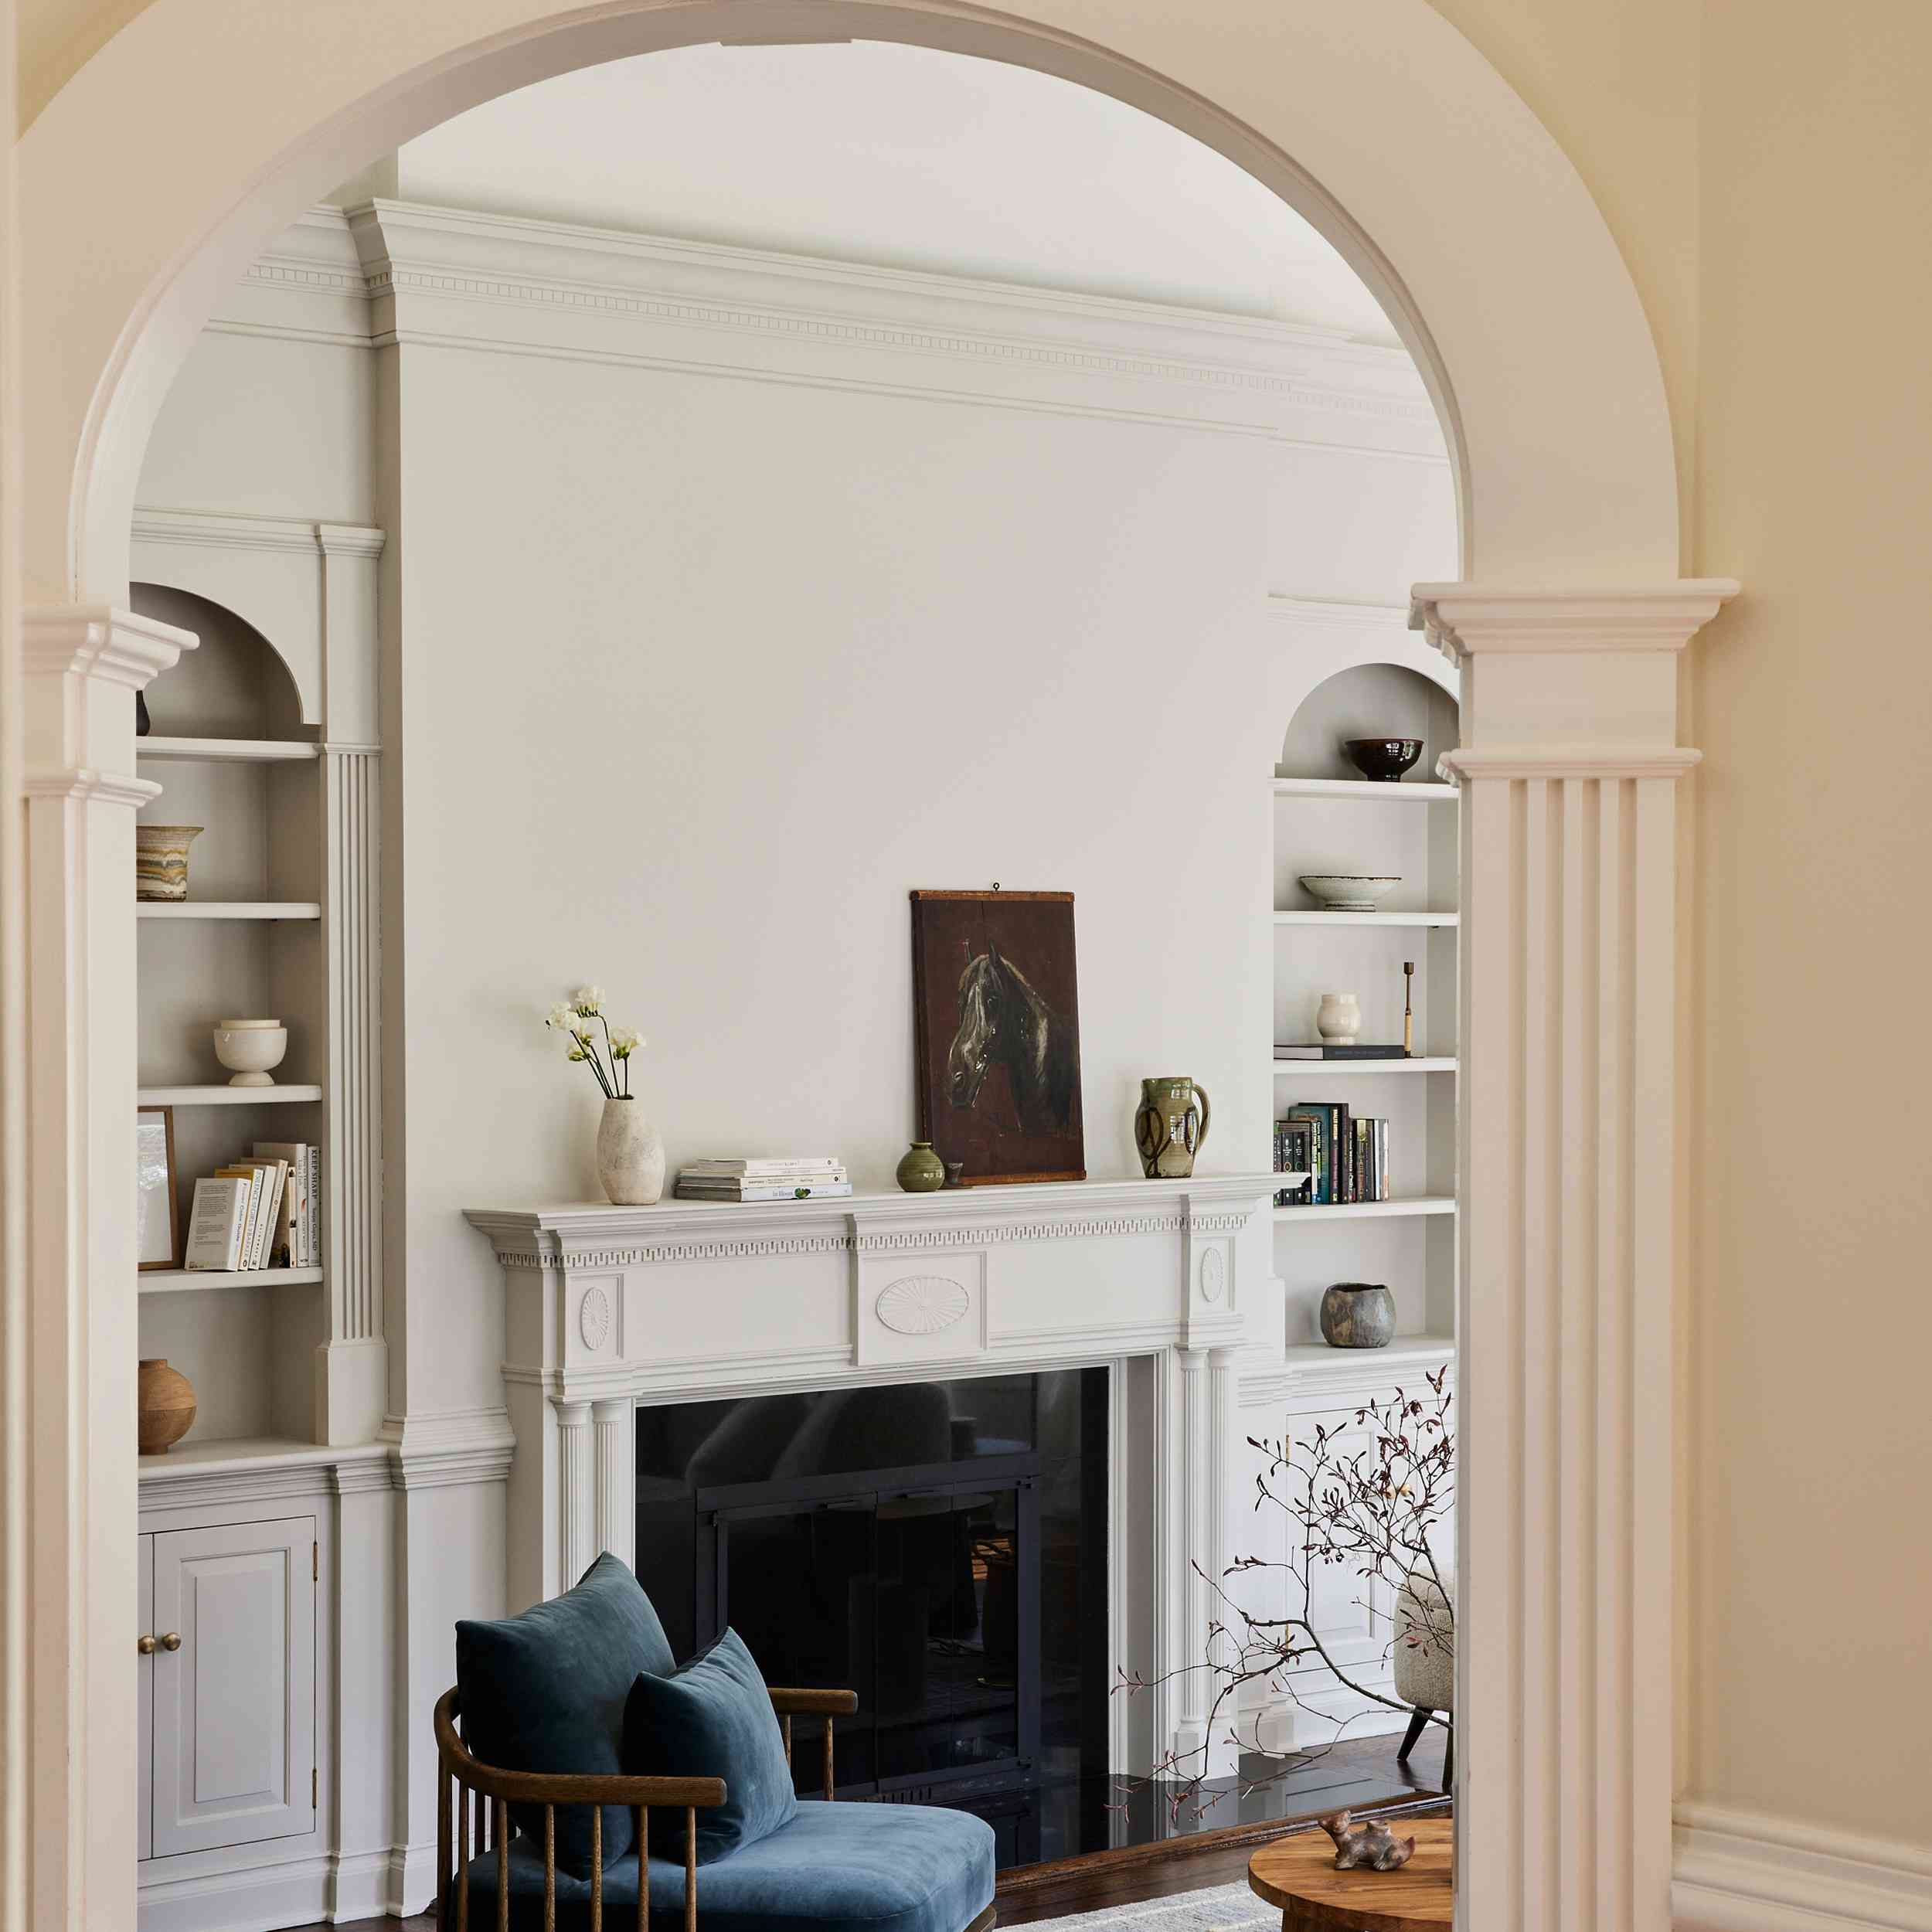 connecticut farmhouse home tour - living room entrance featuring arched doorways